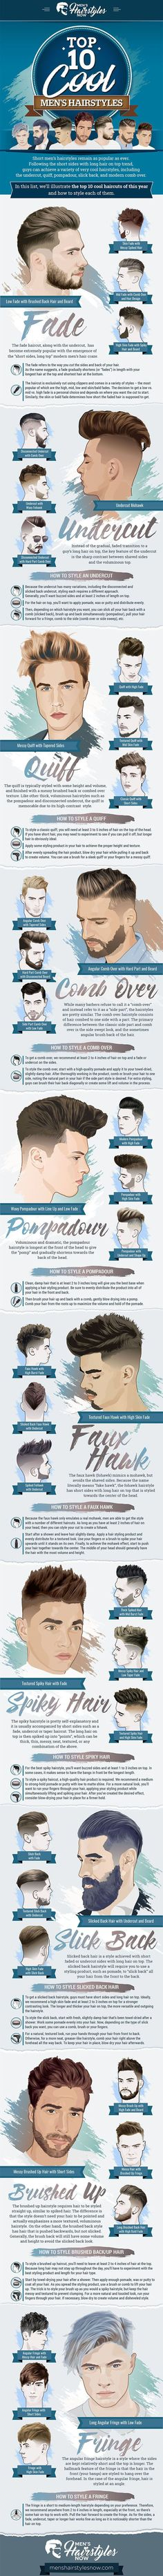 Mens haircut st louis dana olsen aidenolsen on pinterest